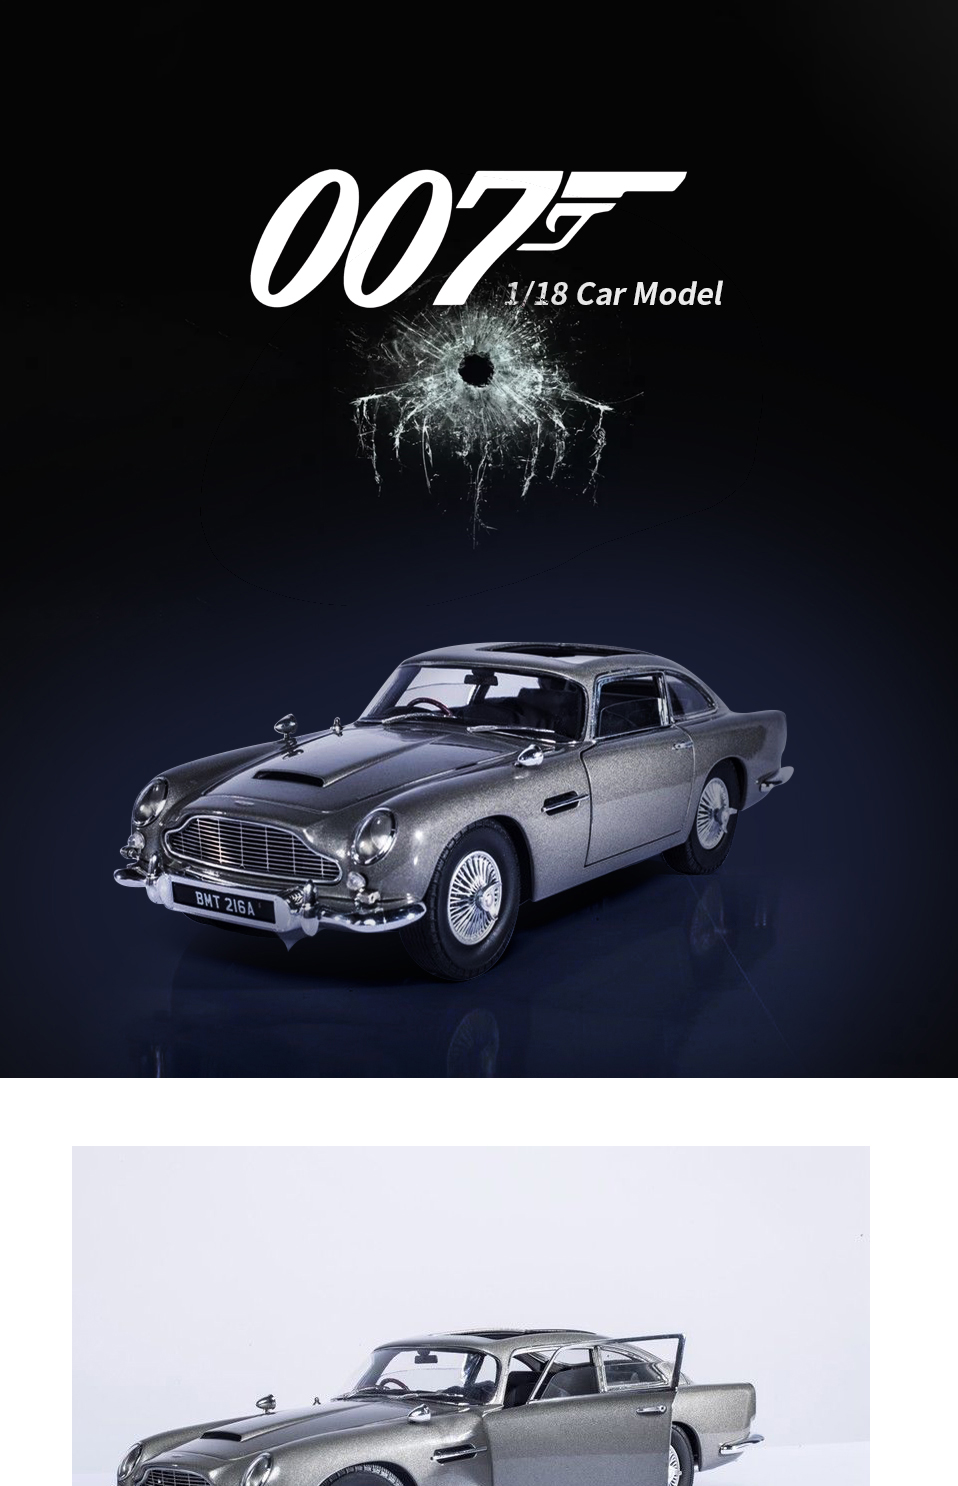 1 18 scale car models 2-4 Years james bond 007 collectables Aston Matin DB5 Diecasts & Toy Vehicles Model Toys For Gifts (1)